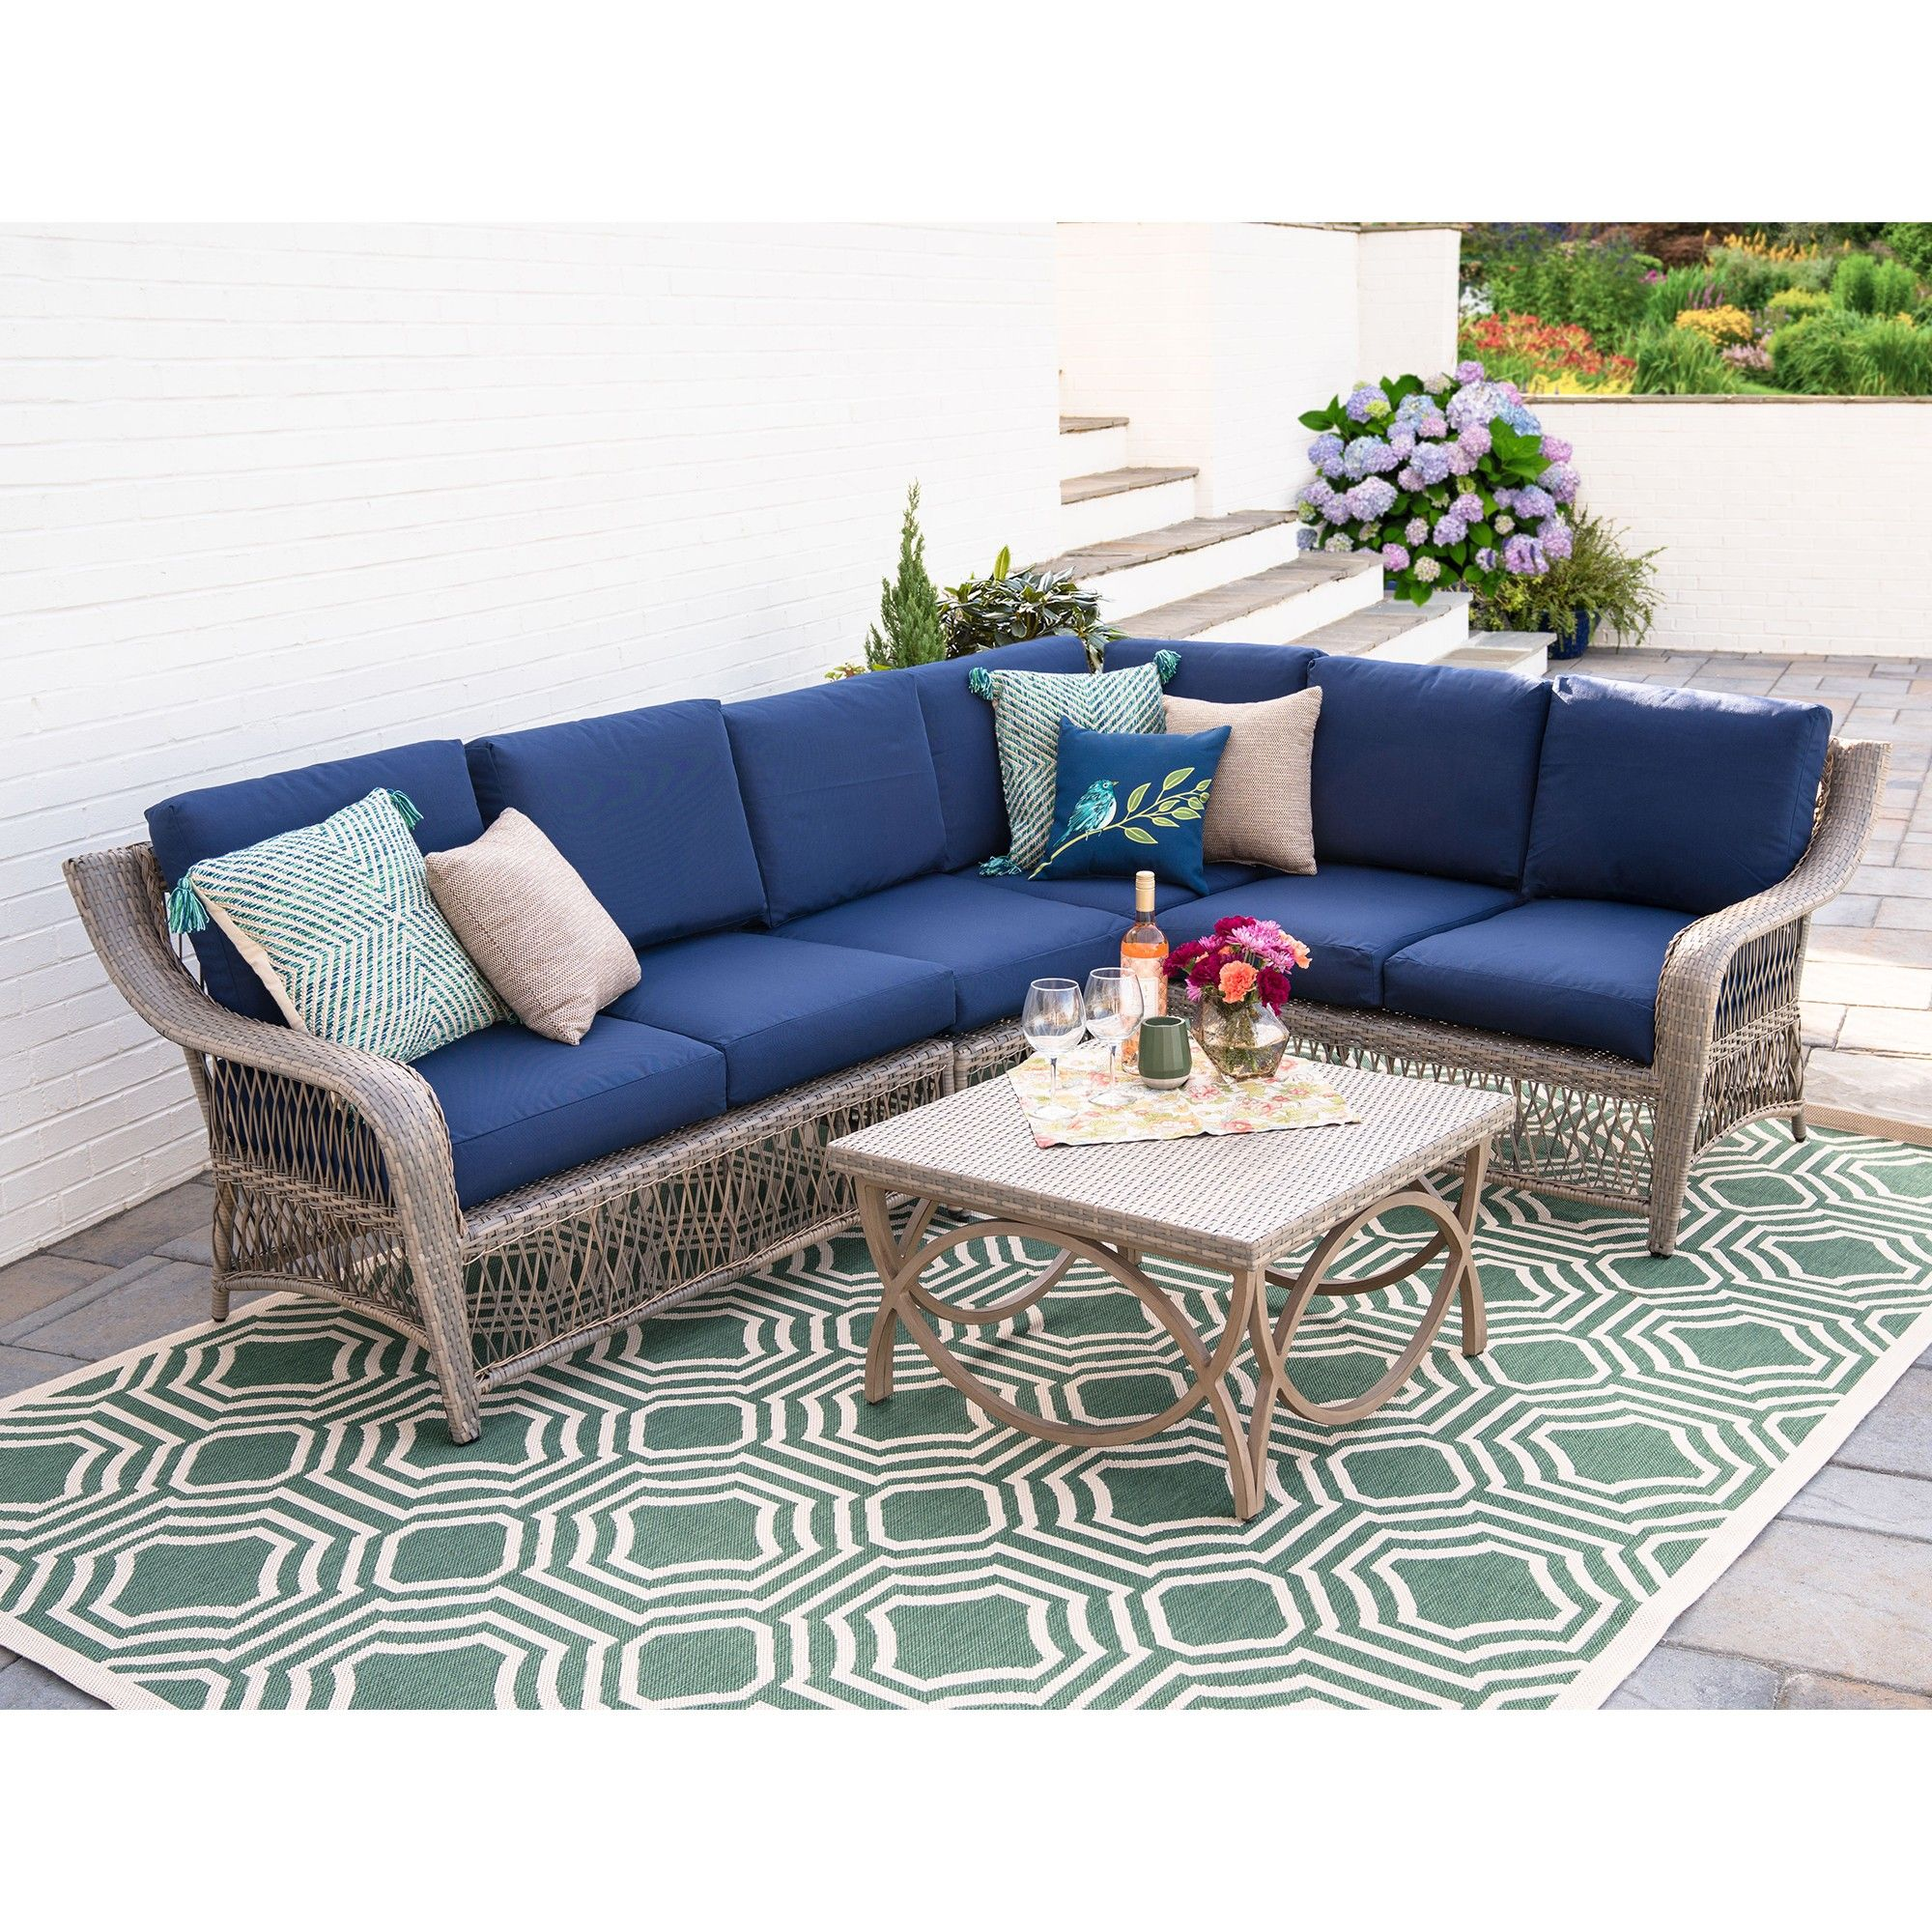 Swell 5Pc Birmingham All Weather Wicker Corner Sectional Navy Download Free Architecture Designs Scobabritishbridgeorg